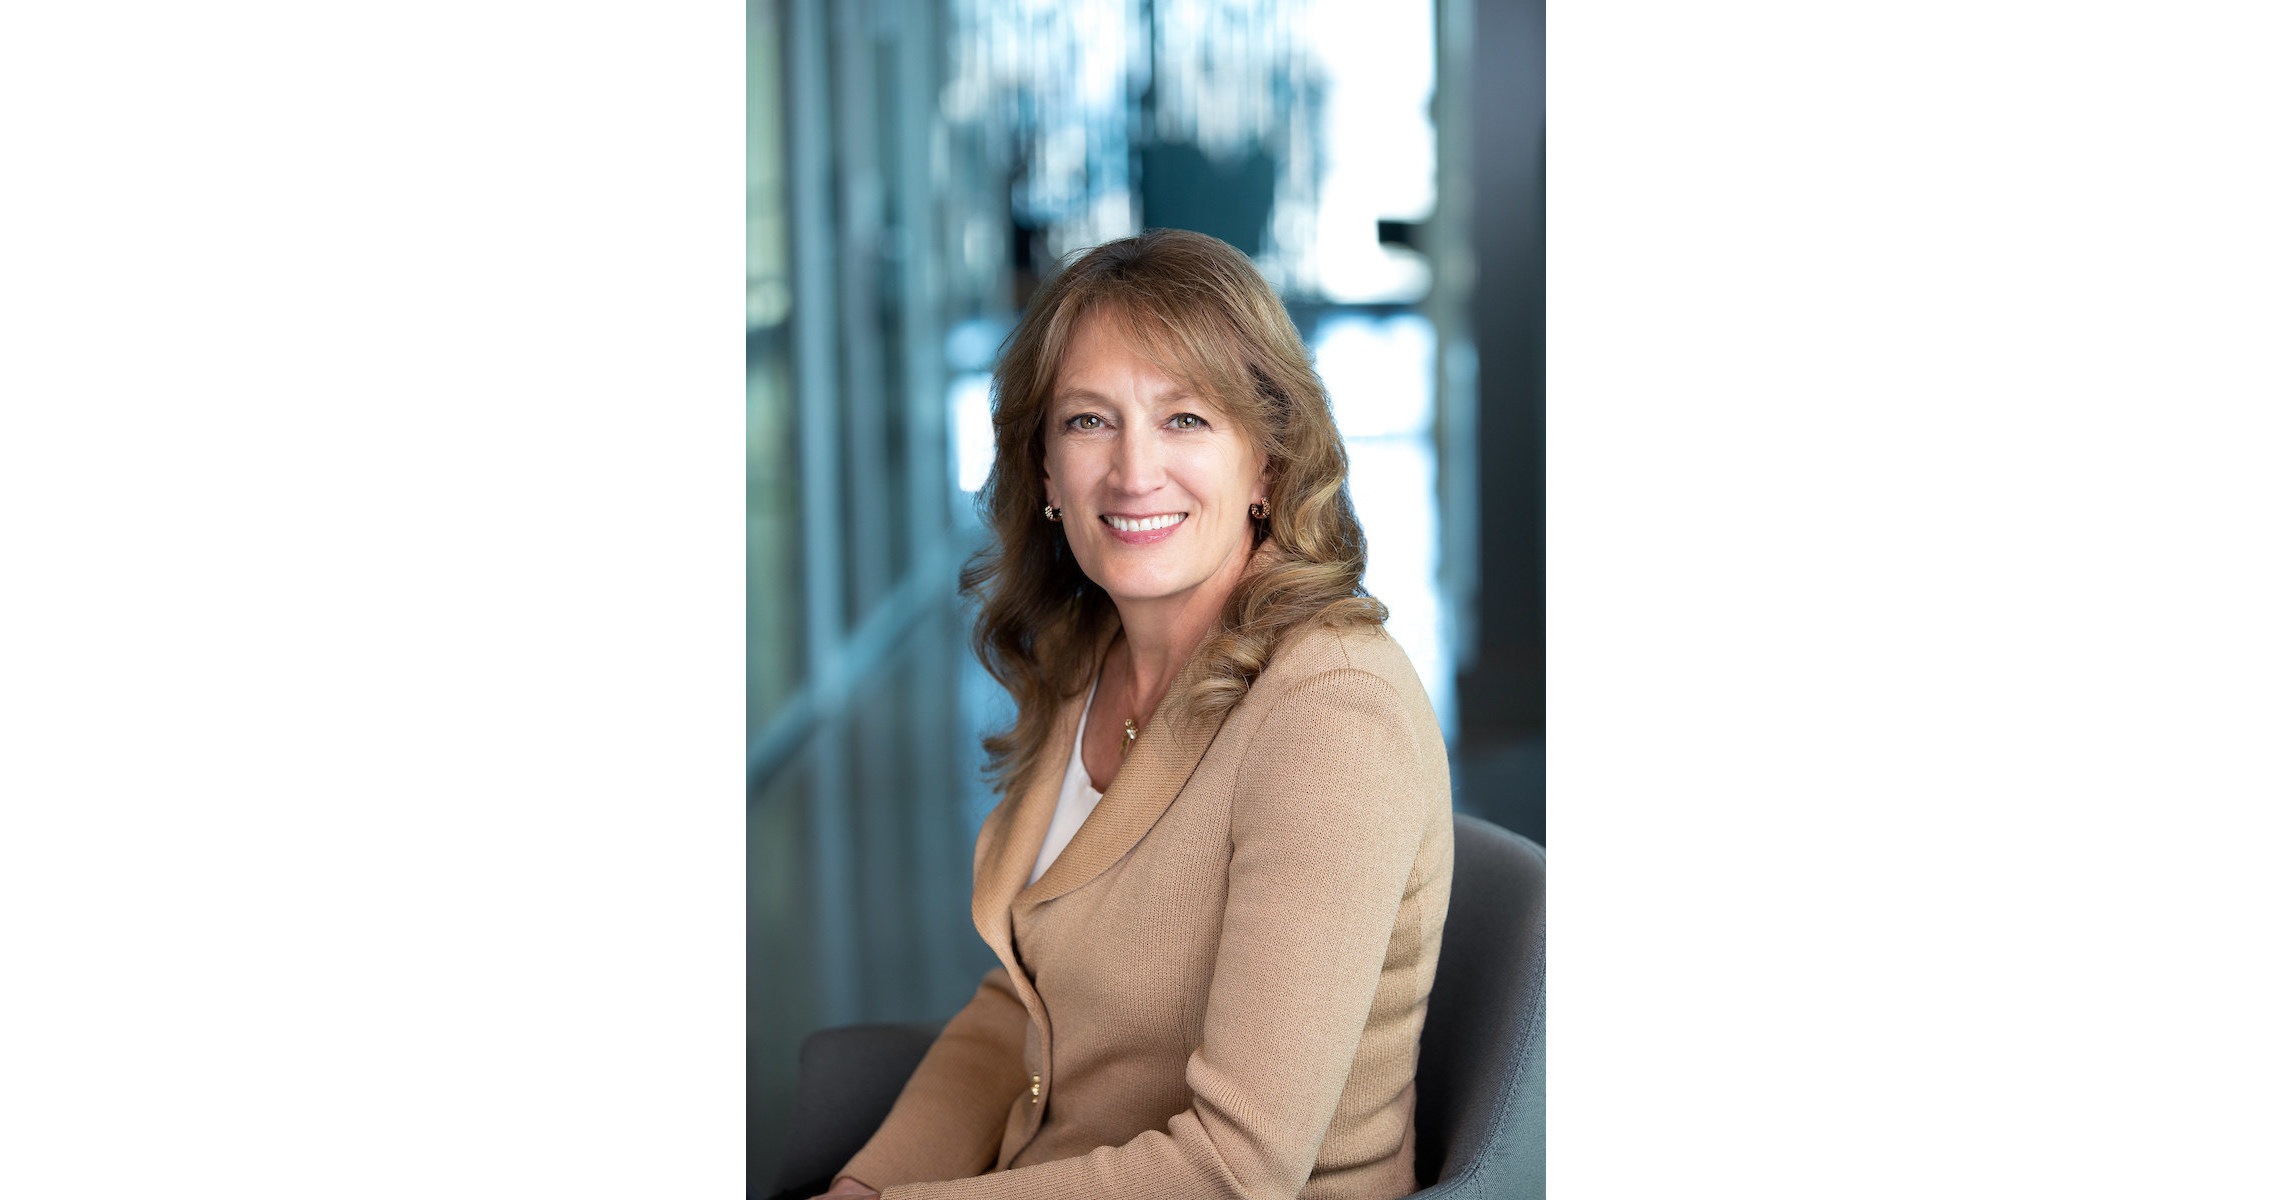 ANAHEIM, Calif., July 29, 2021 /PRNewswire/ -- Christie Simons, CPA, an Audit & Assurance partner at Deloitte & Touche LLP, was named the new chair of the CalCPA Board of Directors during CalCPA's Annual Members' Business Meeting. Simons will focus her term o…